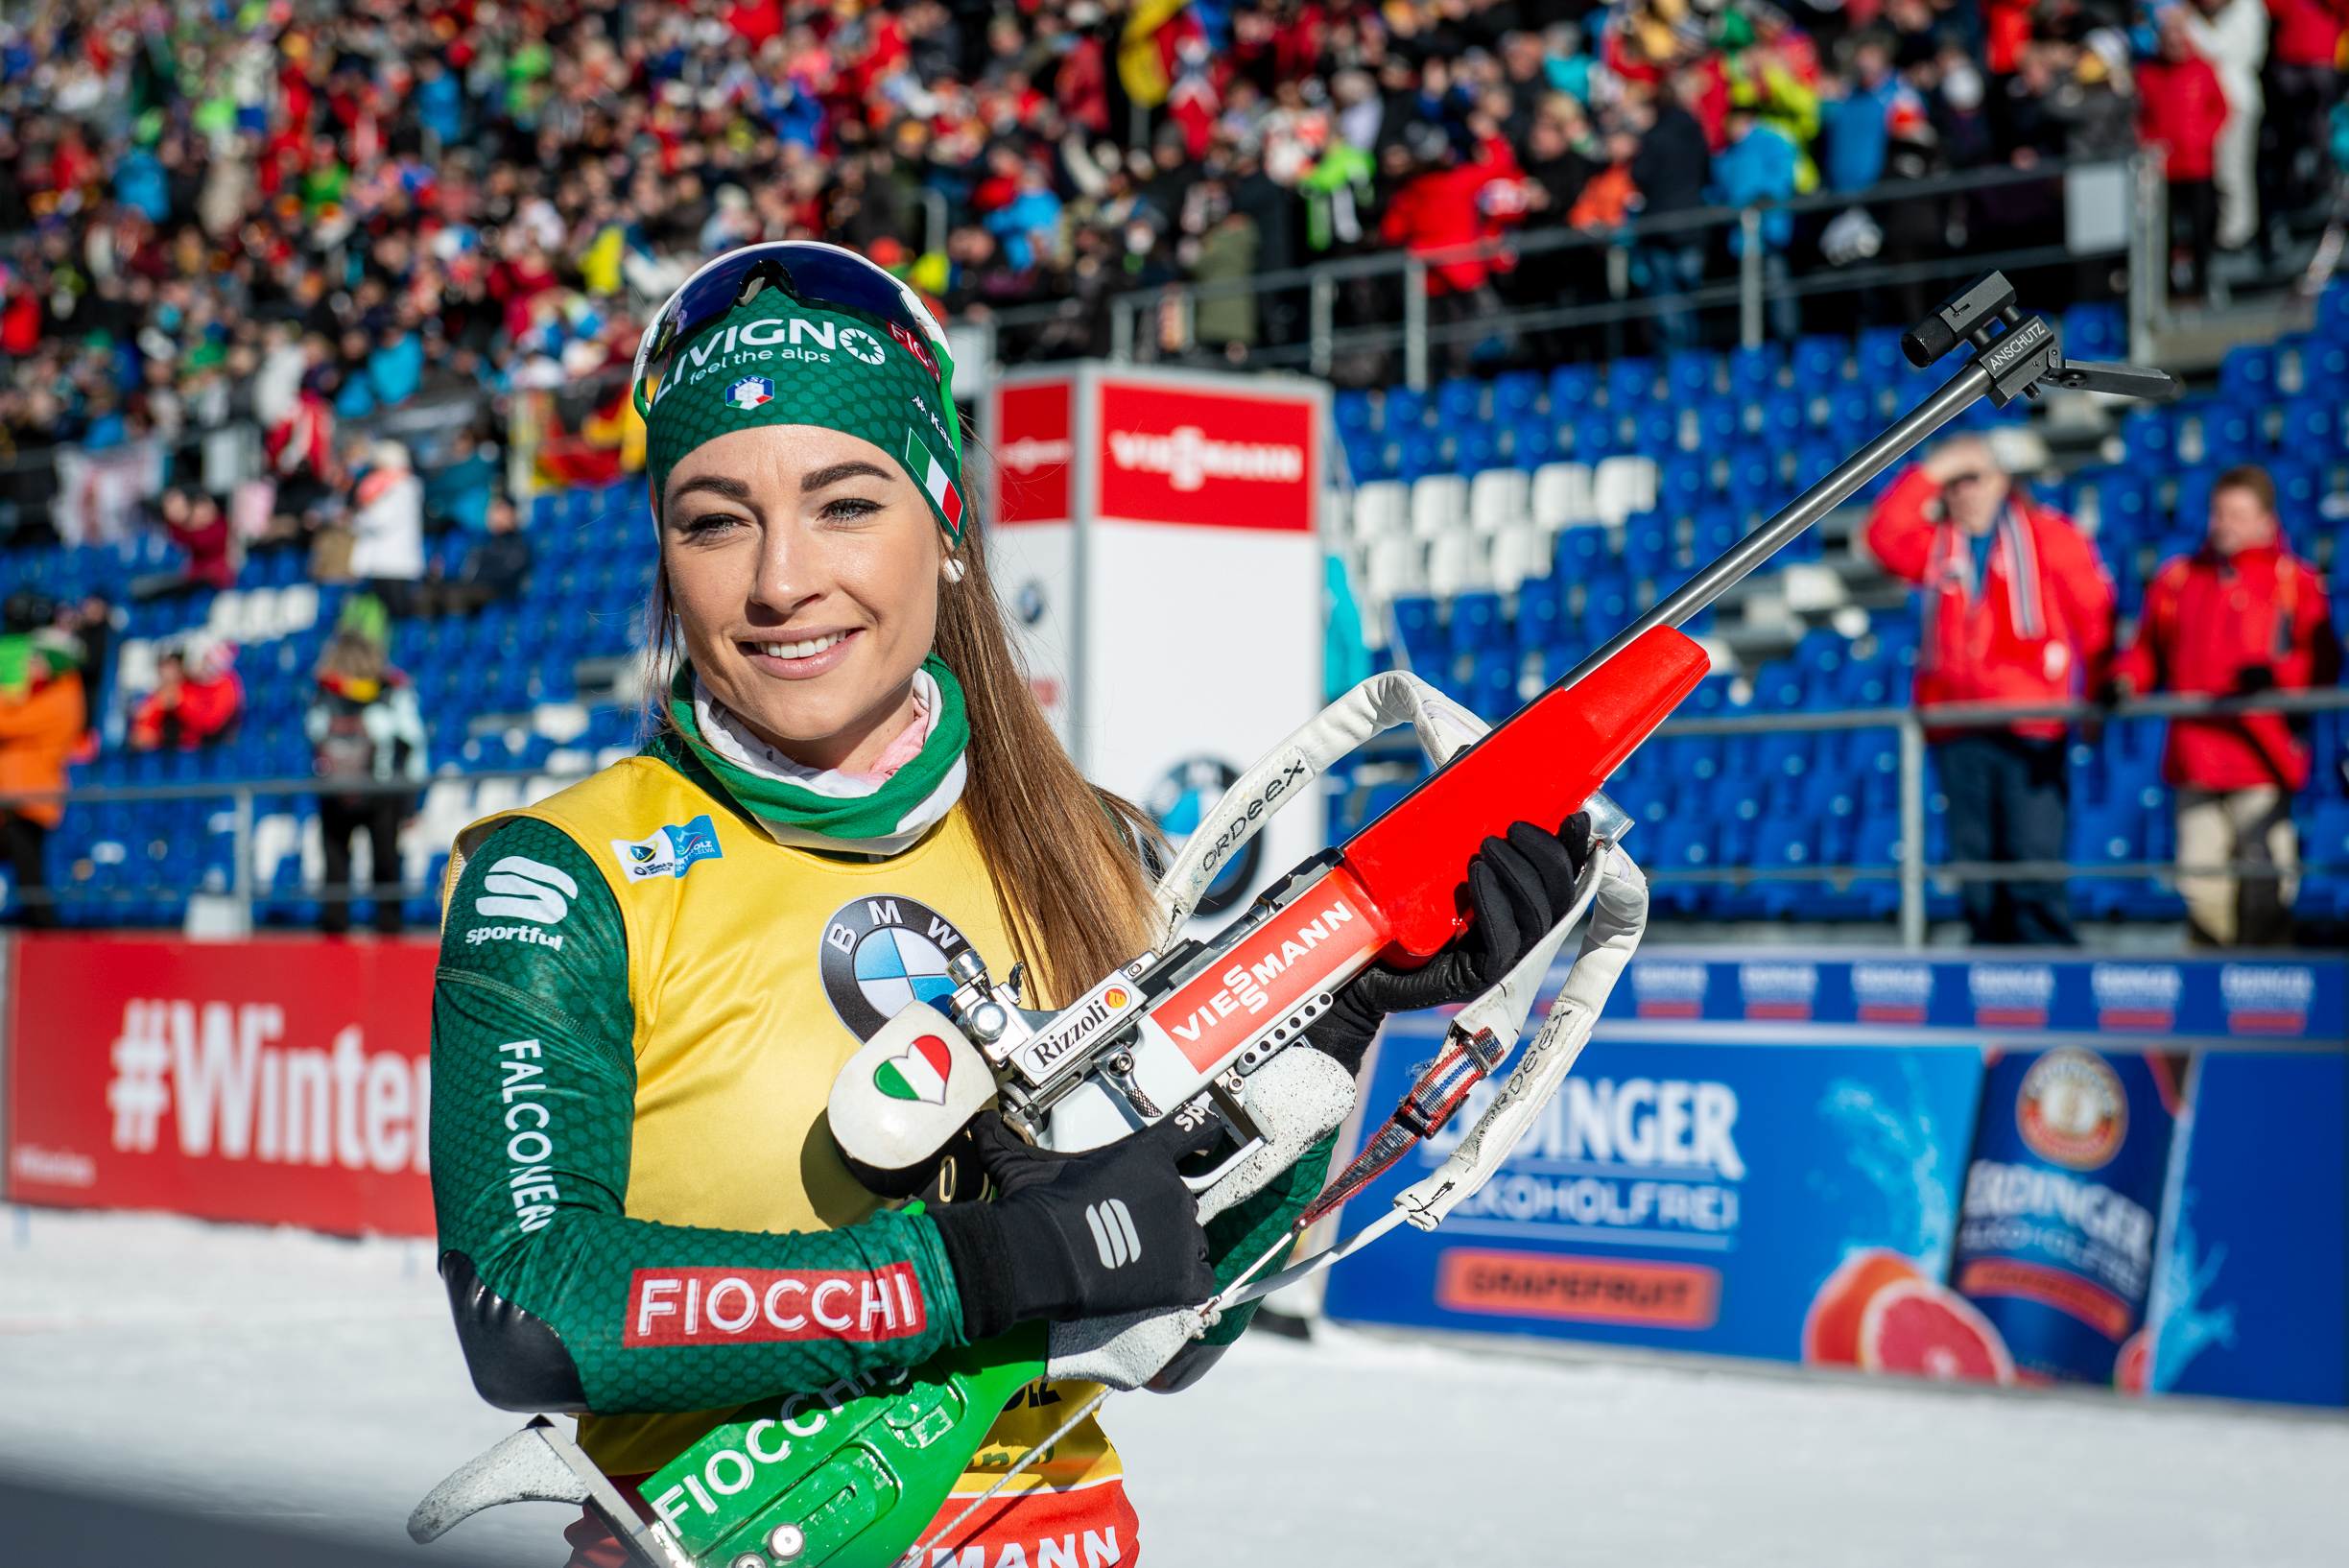 DOROTHEA WIERER WINS THE 2018/2019 IBU WORLD CUP